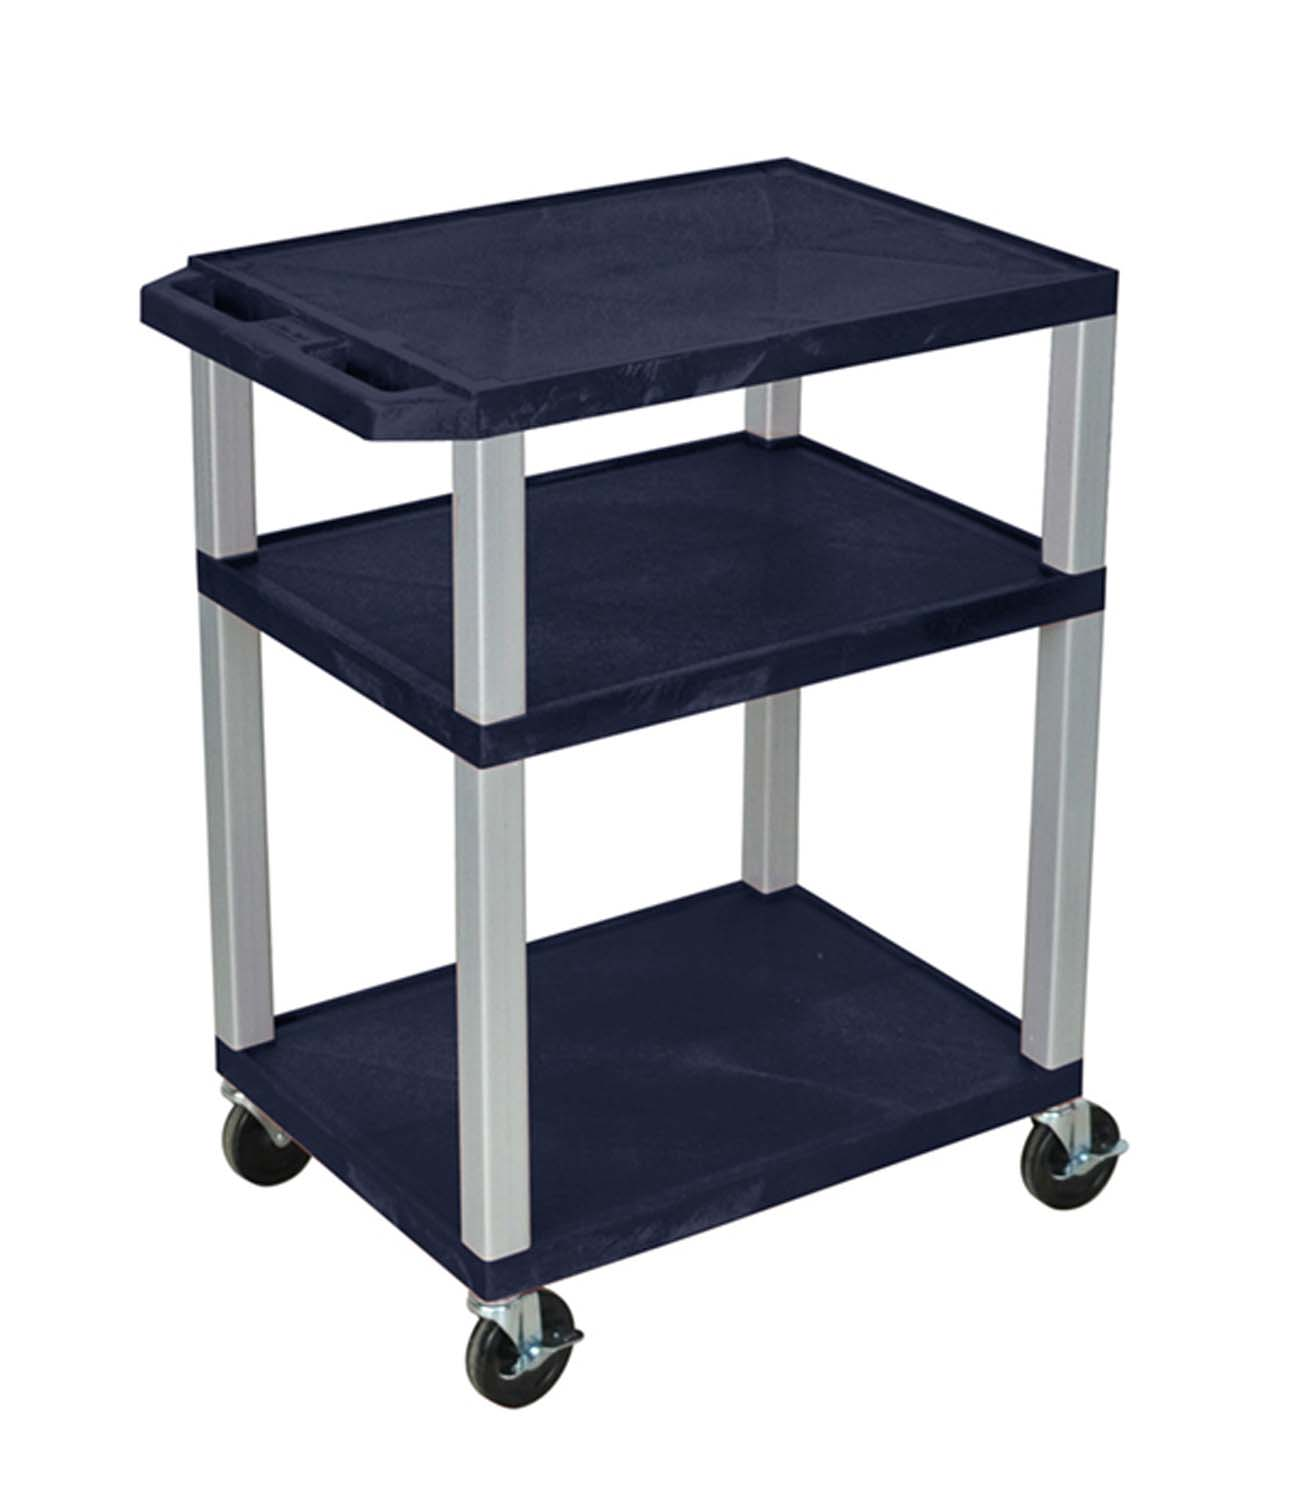 Offex Tuffy AV Cart 3 Shelves Nickel Legs